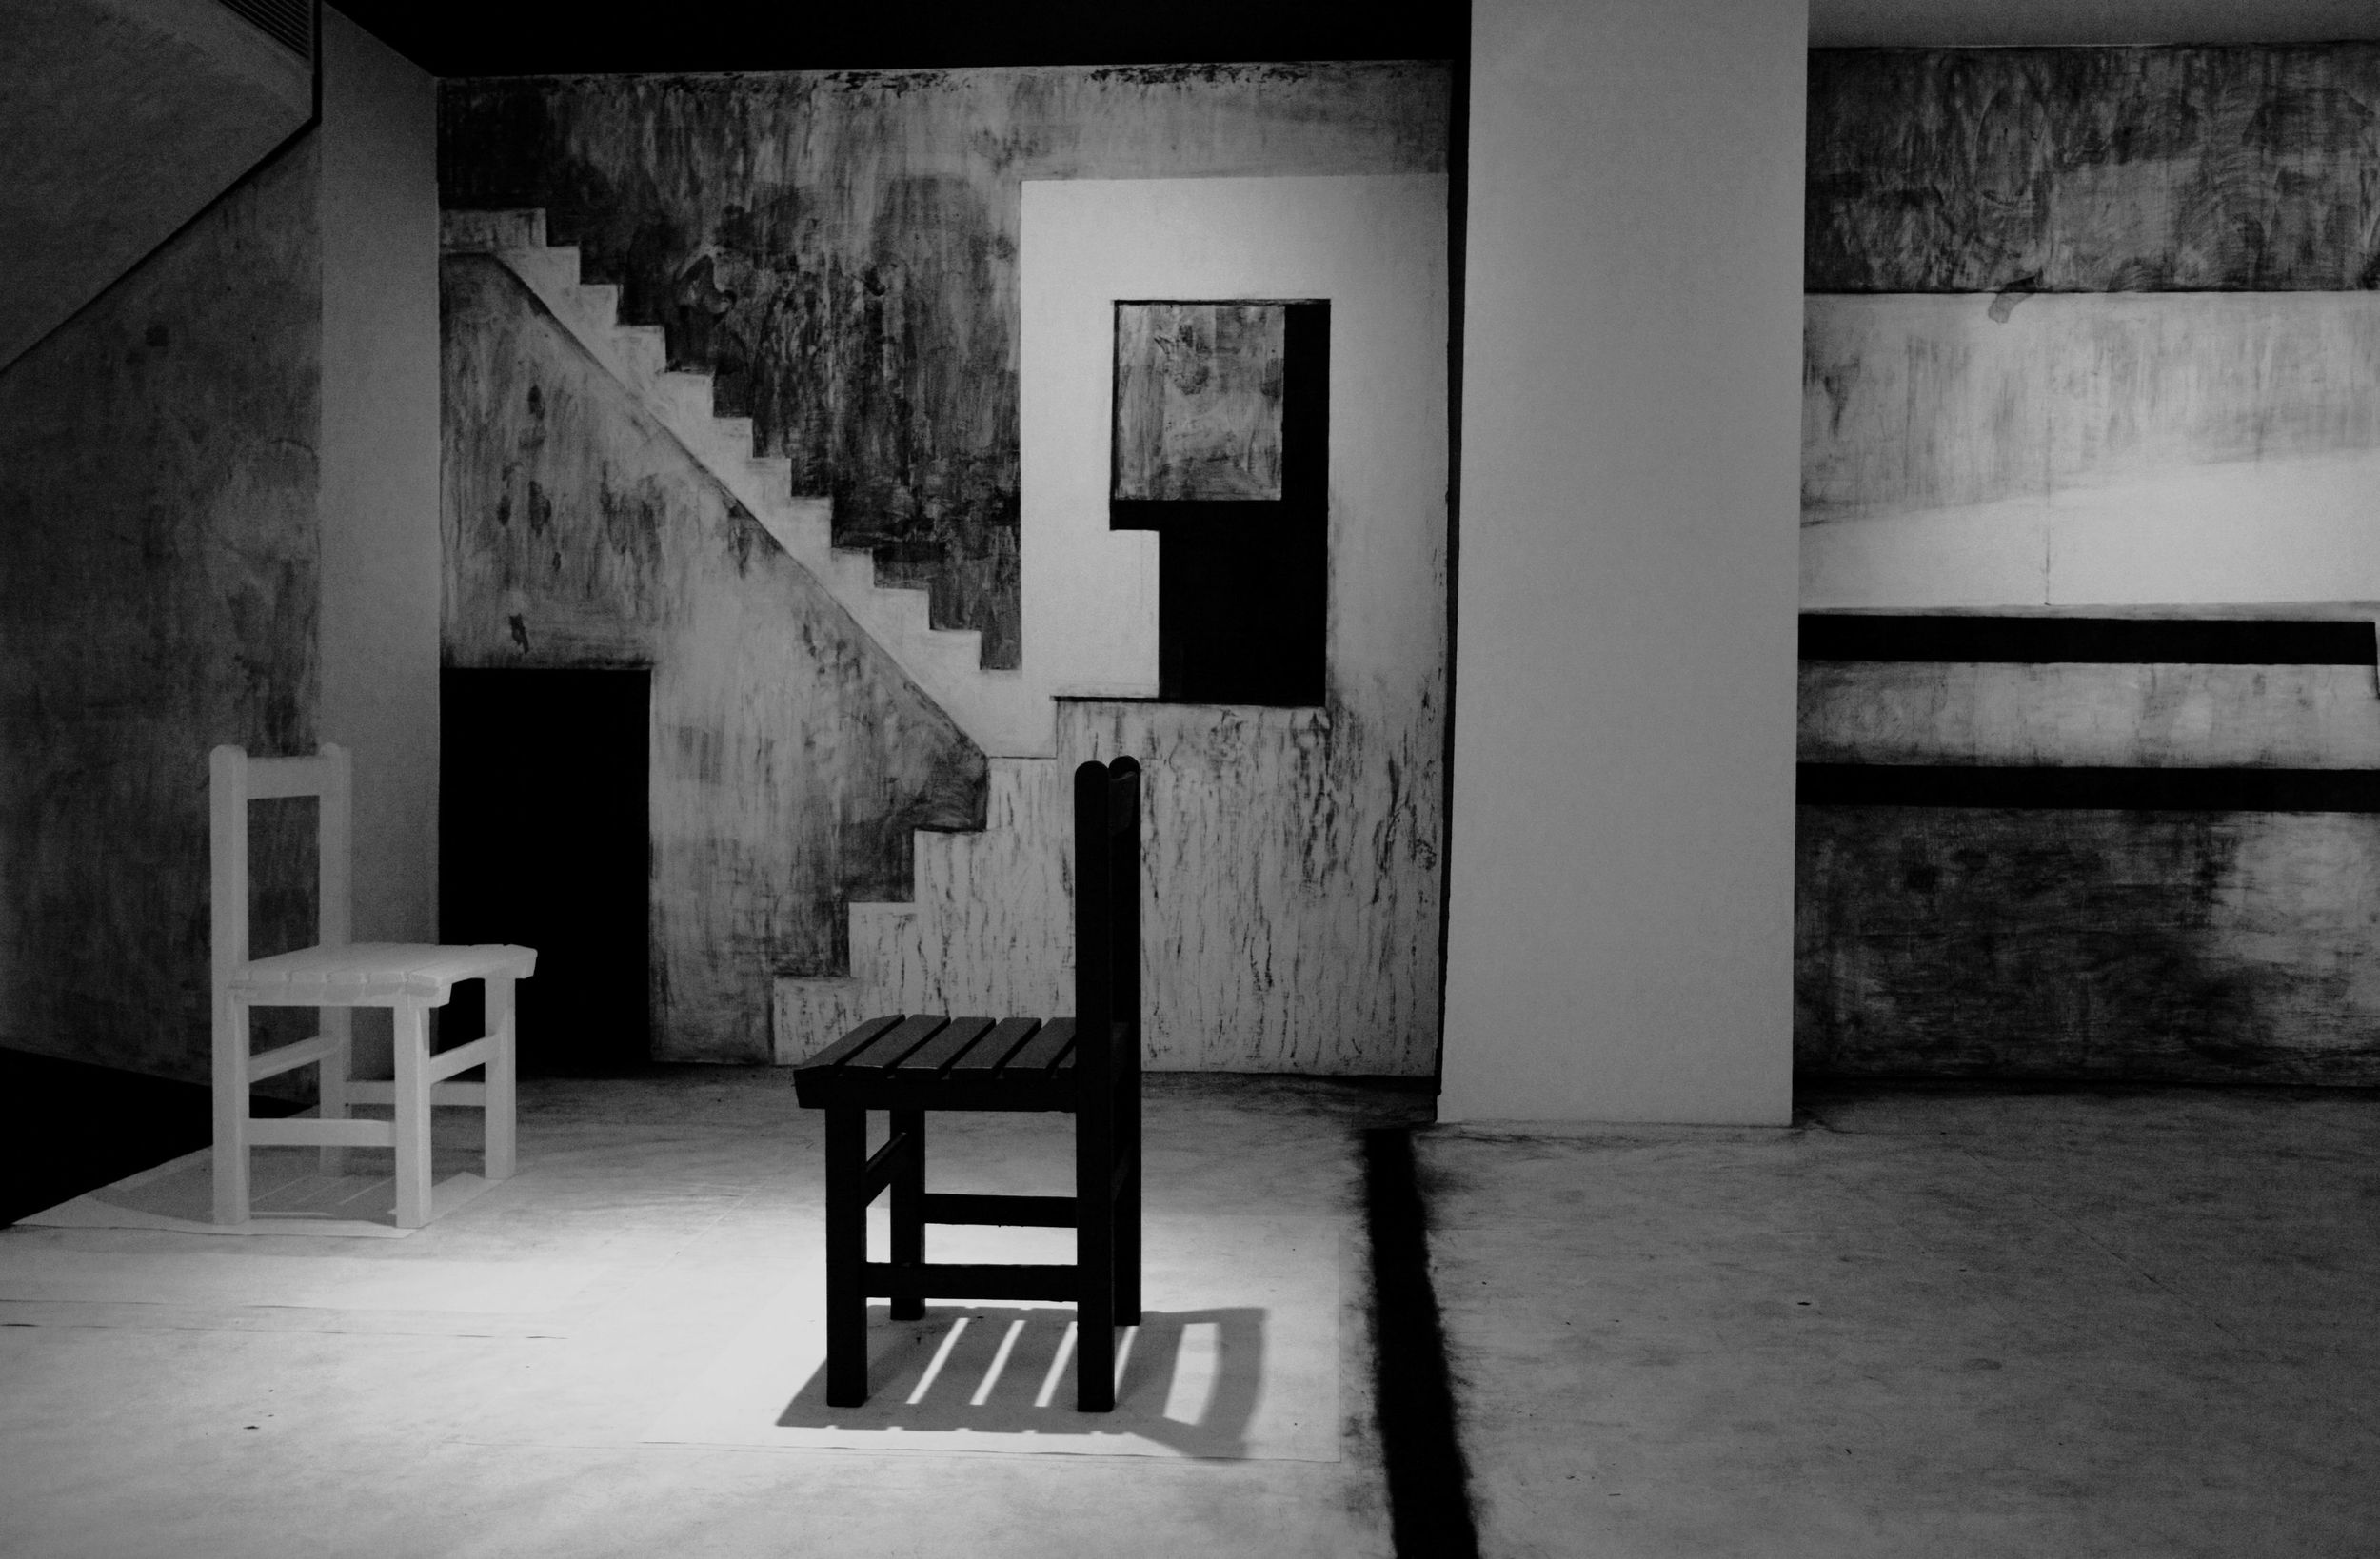 An Other Space Within the House II Scene 1  , Drawing charcoal, emulsion paint, tapes, paper & existing furniture,  Dimensions variable, 2010, Site-specific drawing installation at Kuandu Museum of Fine Art, Taipei, Taiwan.  (Done as part of a two-month Kuandu Museum of Fine Art Residency, June–July 2010) Photo documentation by Tang Ling Nah.